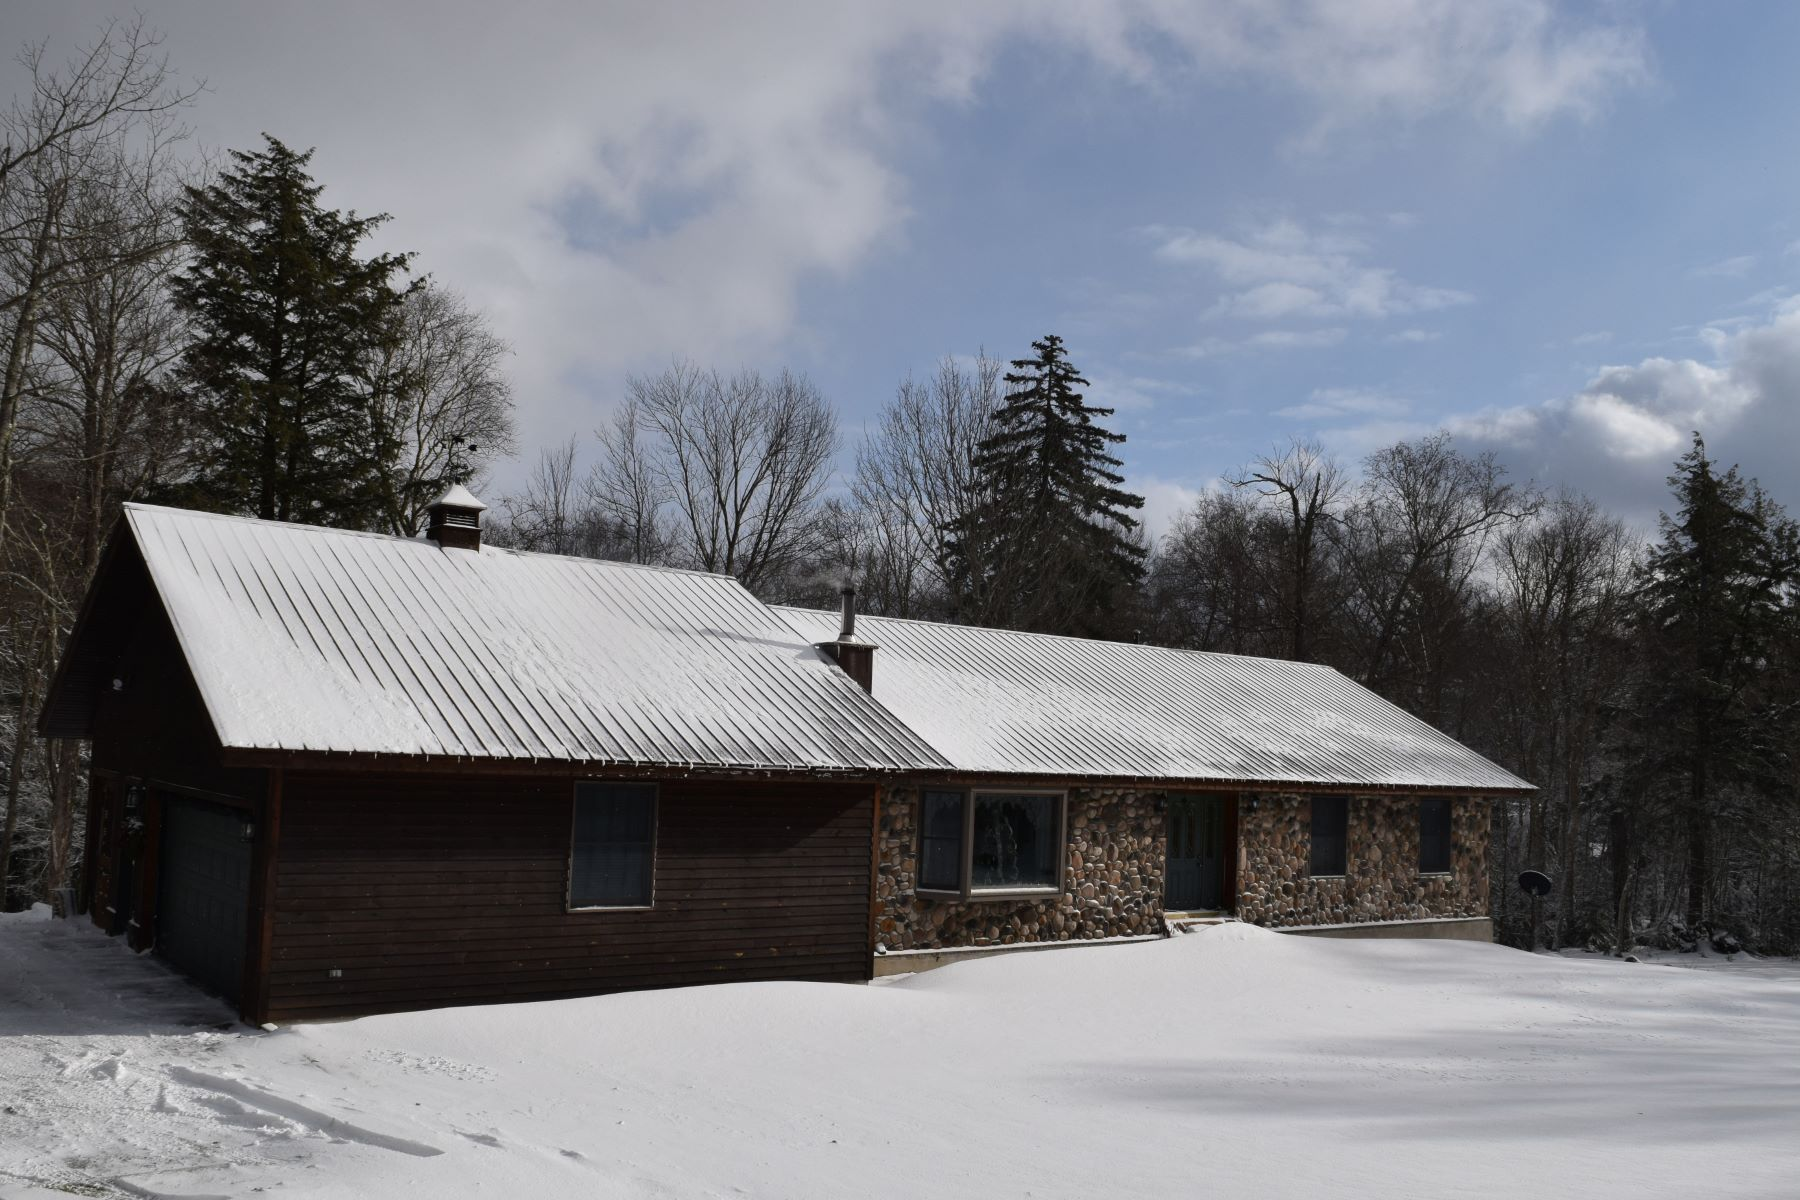 Single Family Homes for Active at Snowmobilers Dream Estate 300 Twitchell Road Eagle Bay, New York 13331 United States